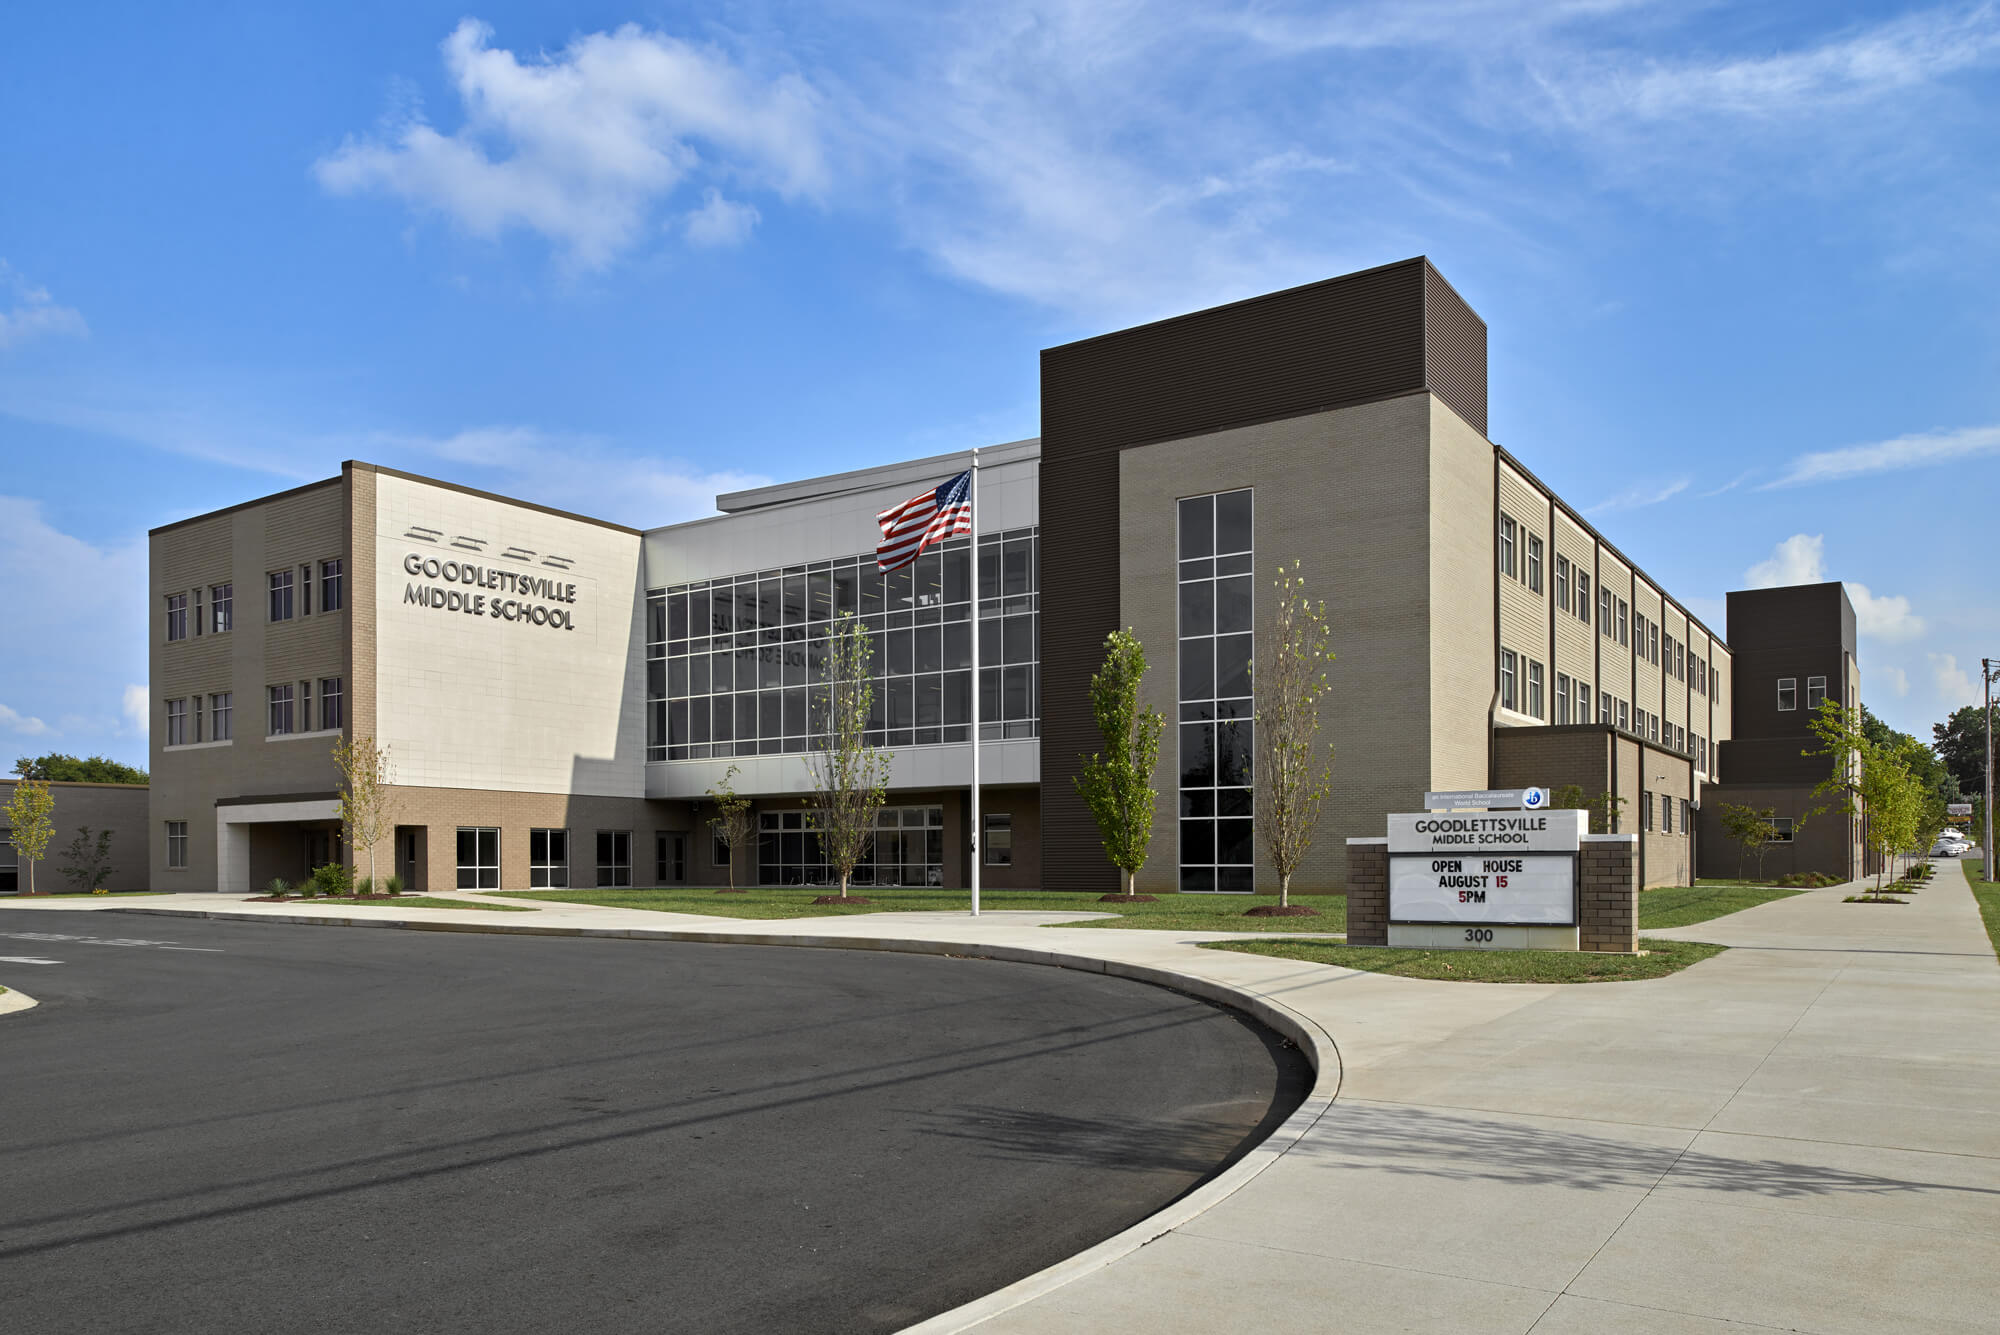 Architectural Photographer Goodlettsville-Middle-School-Shot-14R-web.jpg